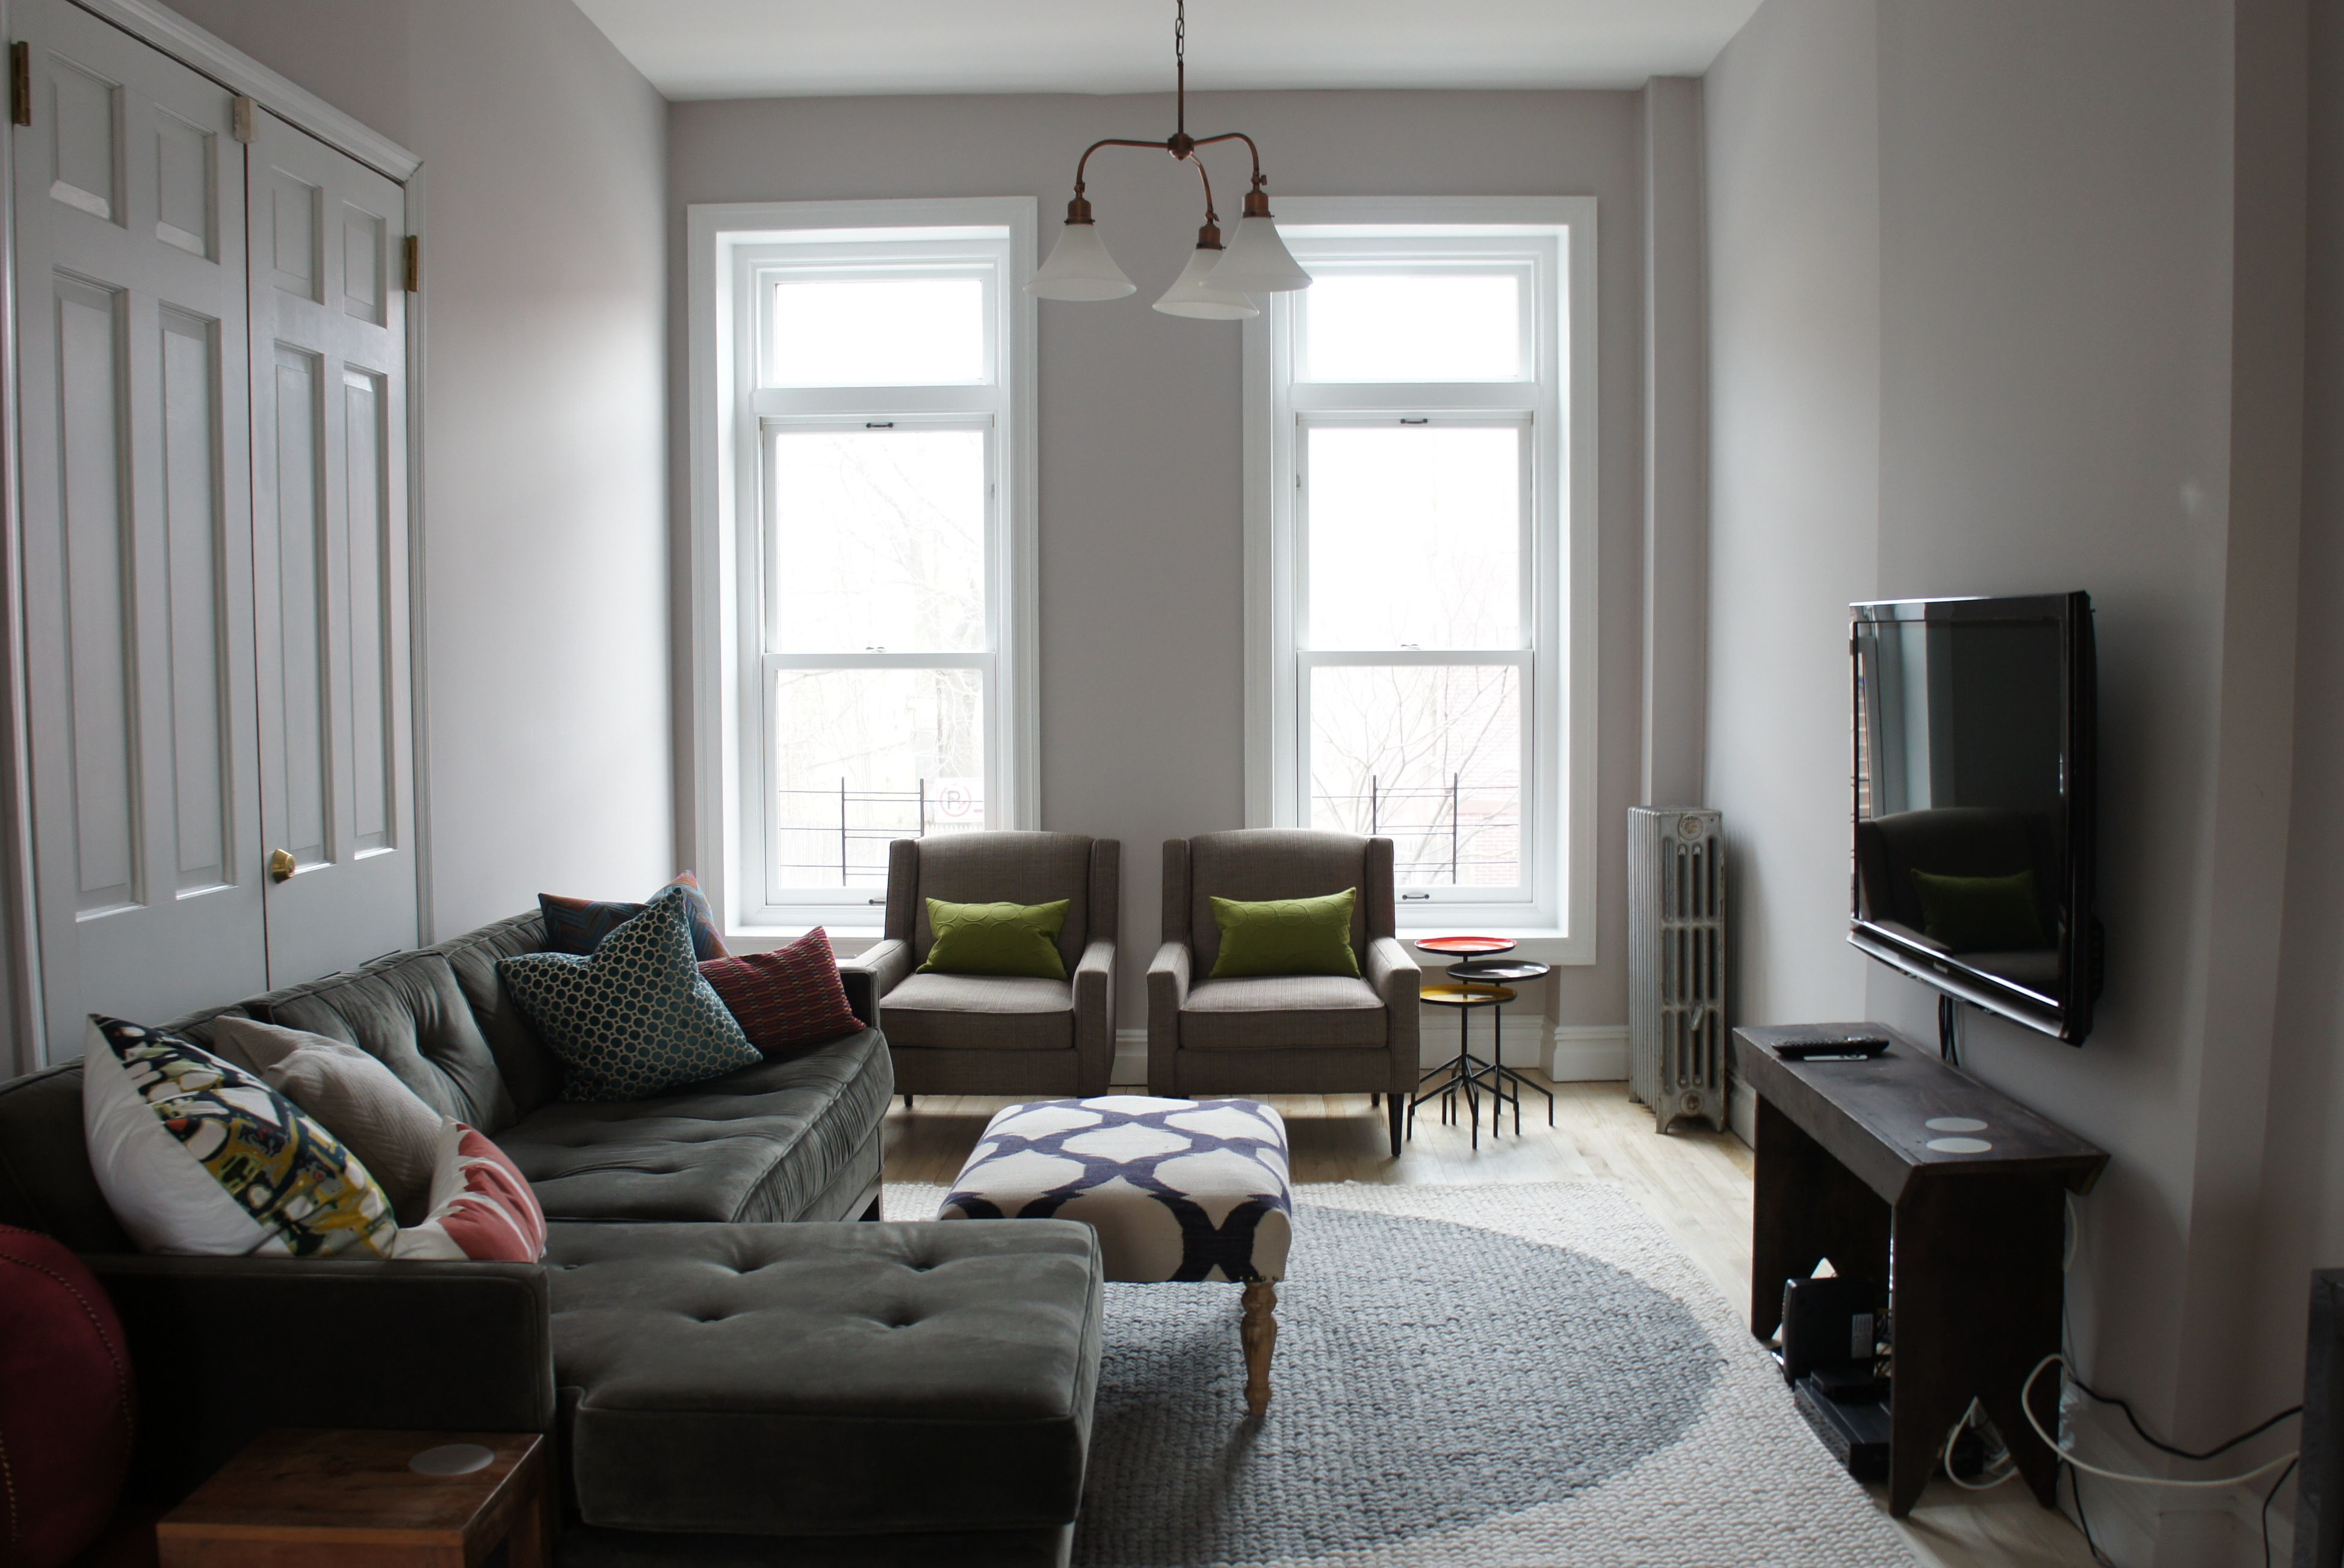 Benjamin moore cement gray extra room what to do with - Benjamin moore paint for living room ...